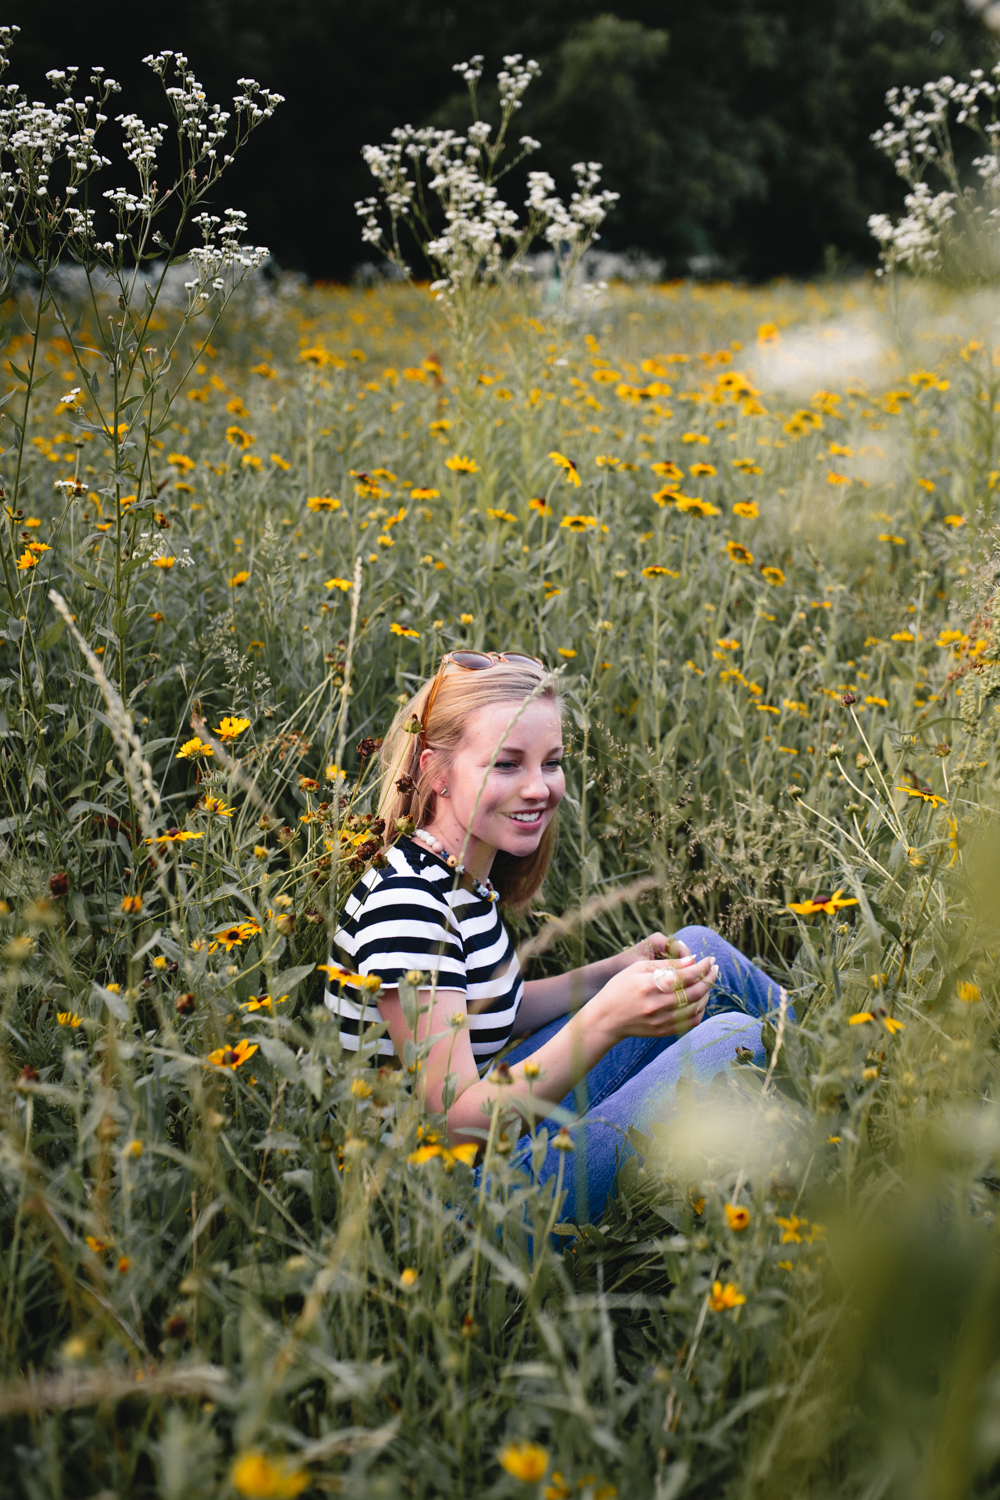 Portrait of woman in a field of flowers